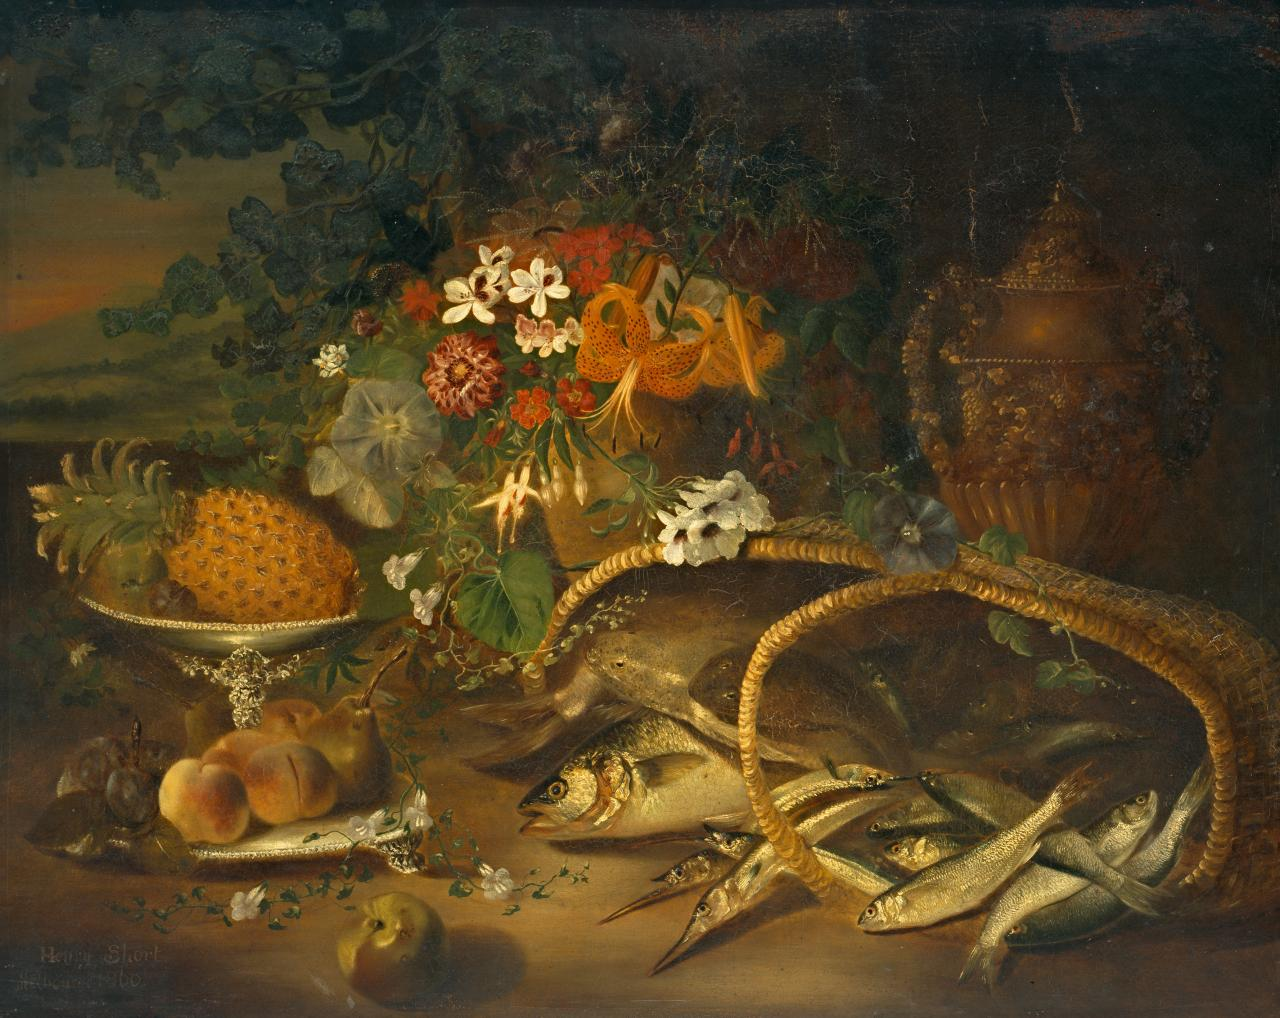 Fish, fruit and flowers